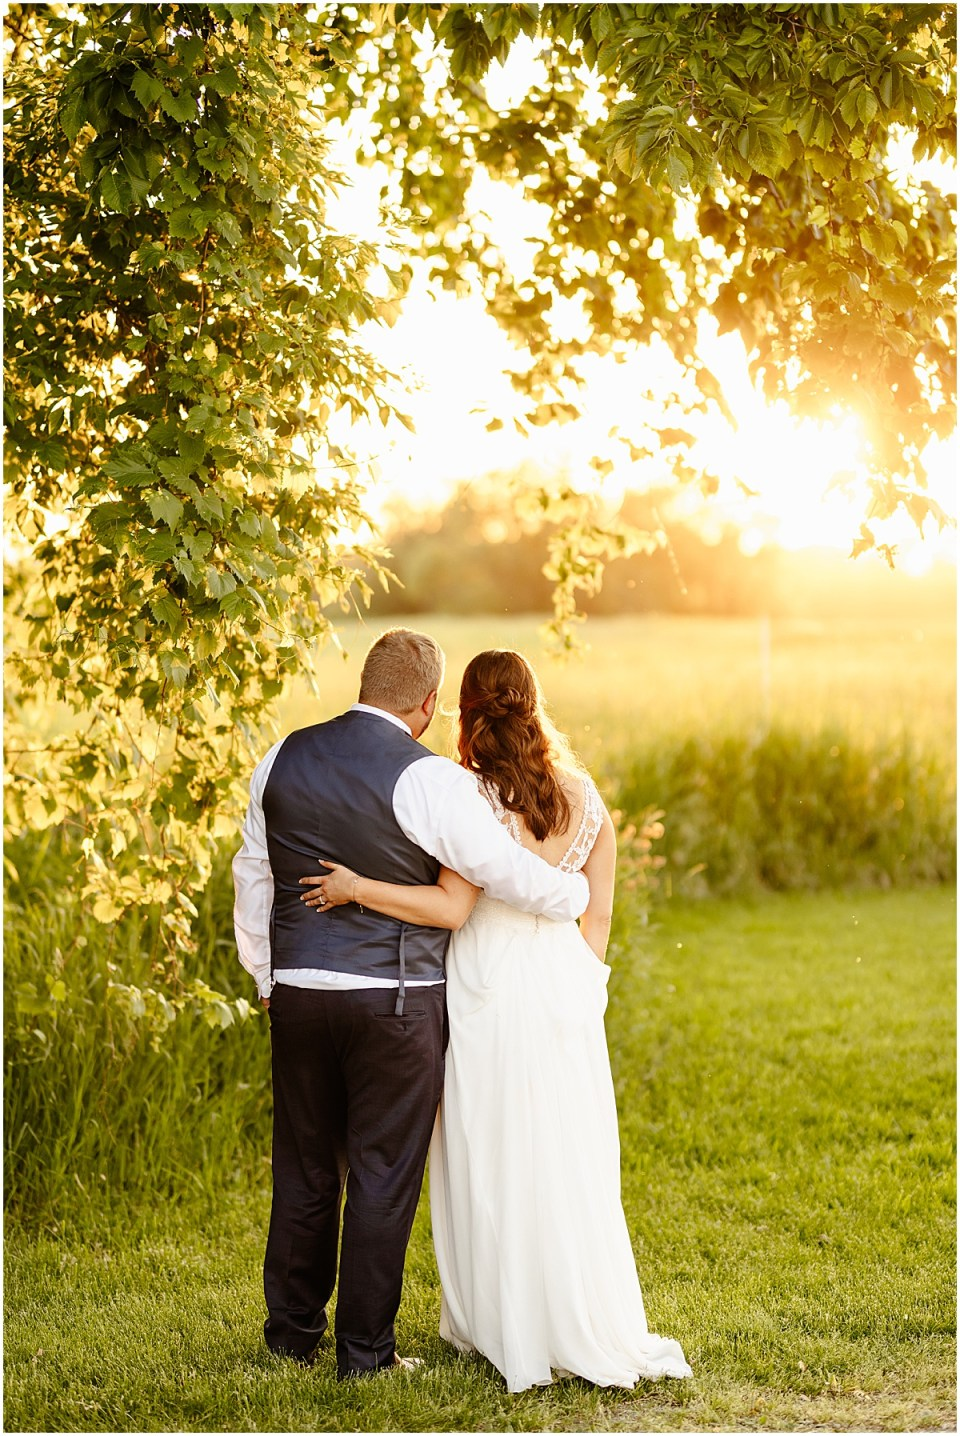 Husband and Wife Sunset Portraits on their wedding day